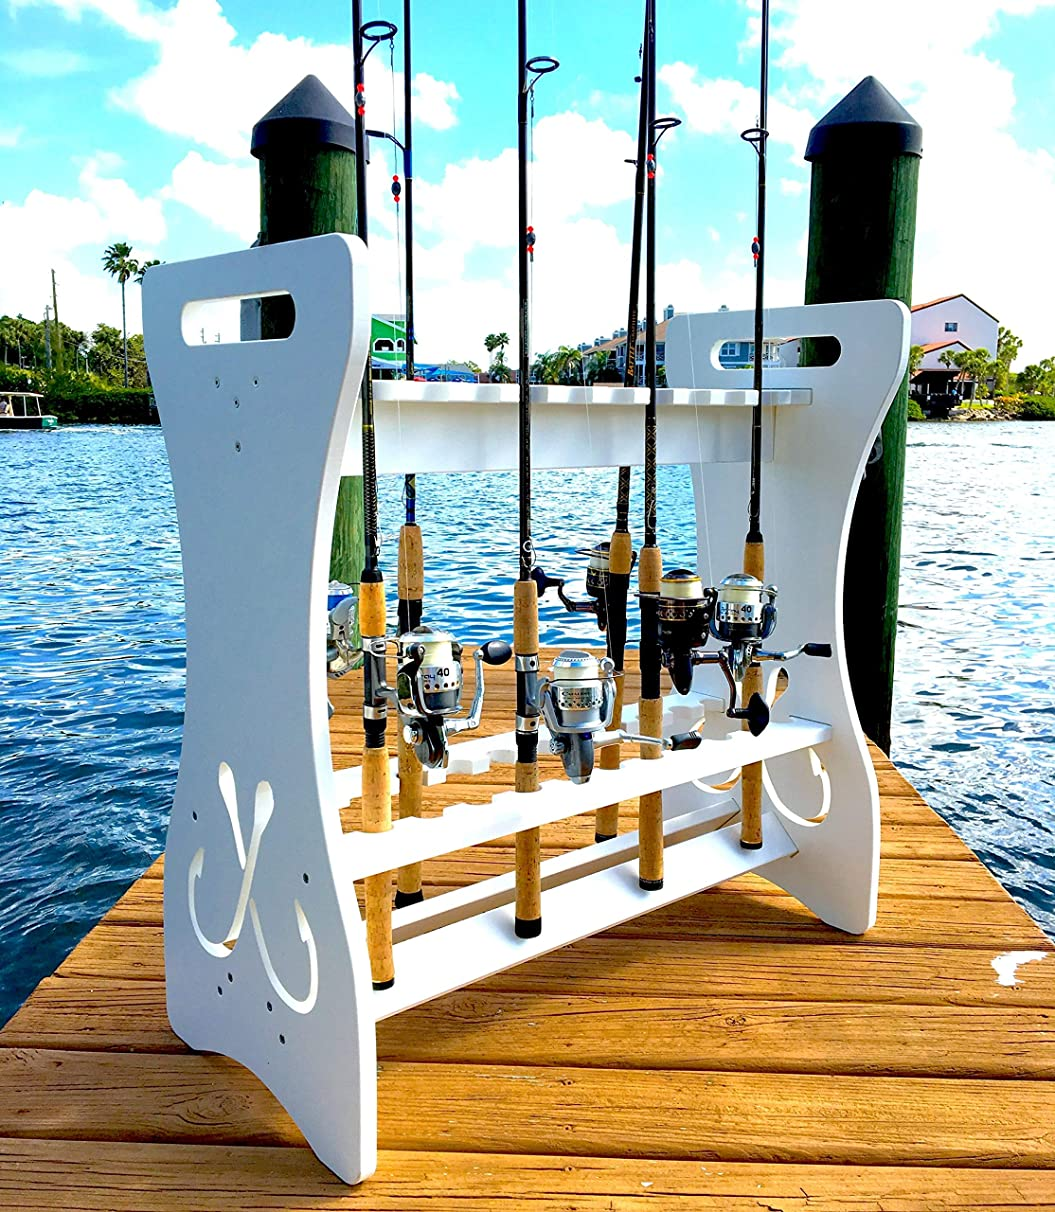 Fishing Rod Storage Rack - Holds 24 Fishing Rods & Reels - Weatherproof - Indoor and Outdoor Storage Stand